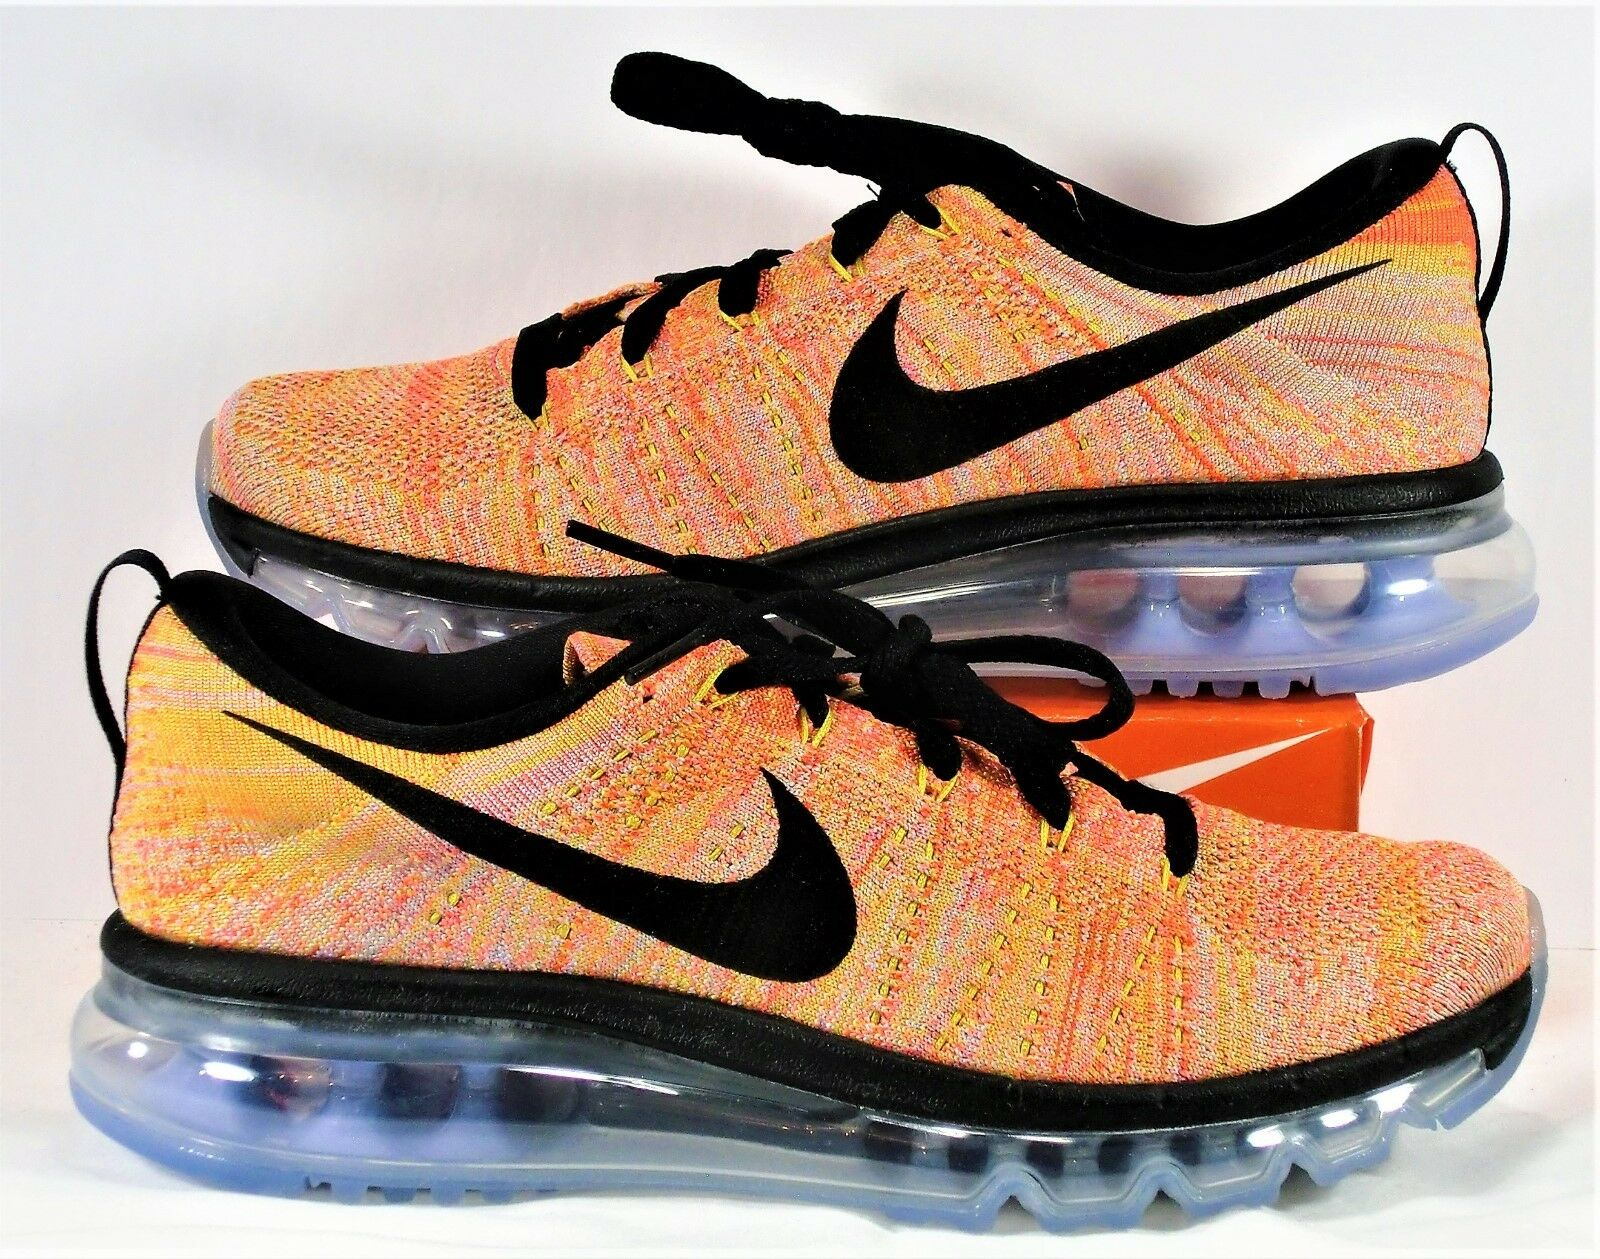 Nike Air Flyknit Max Rainbow & Multi color Running shoes Sz 6.5 NEW 620659 005